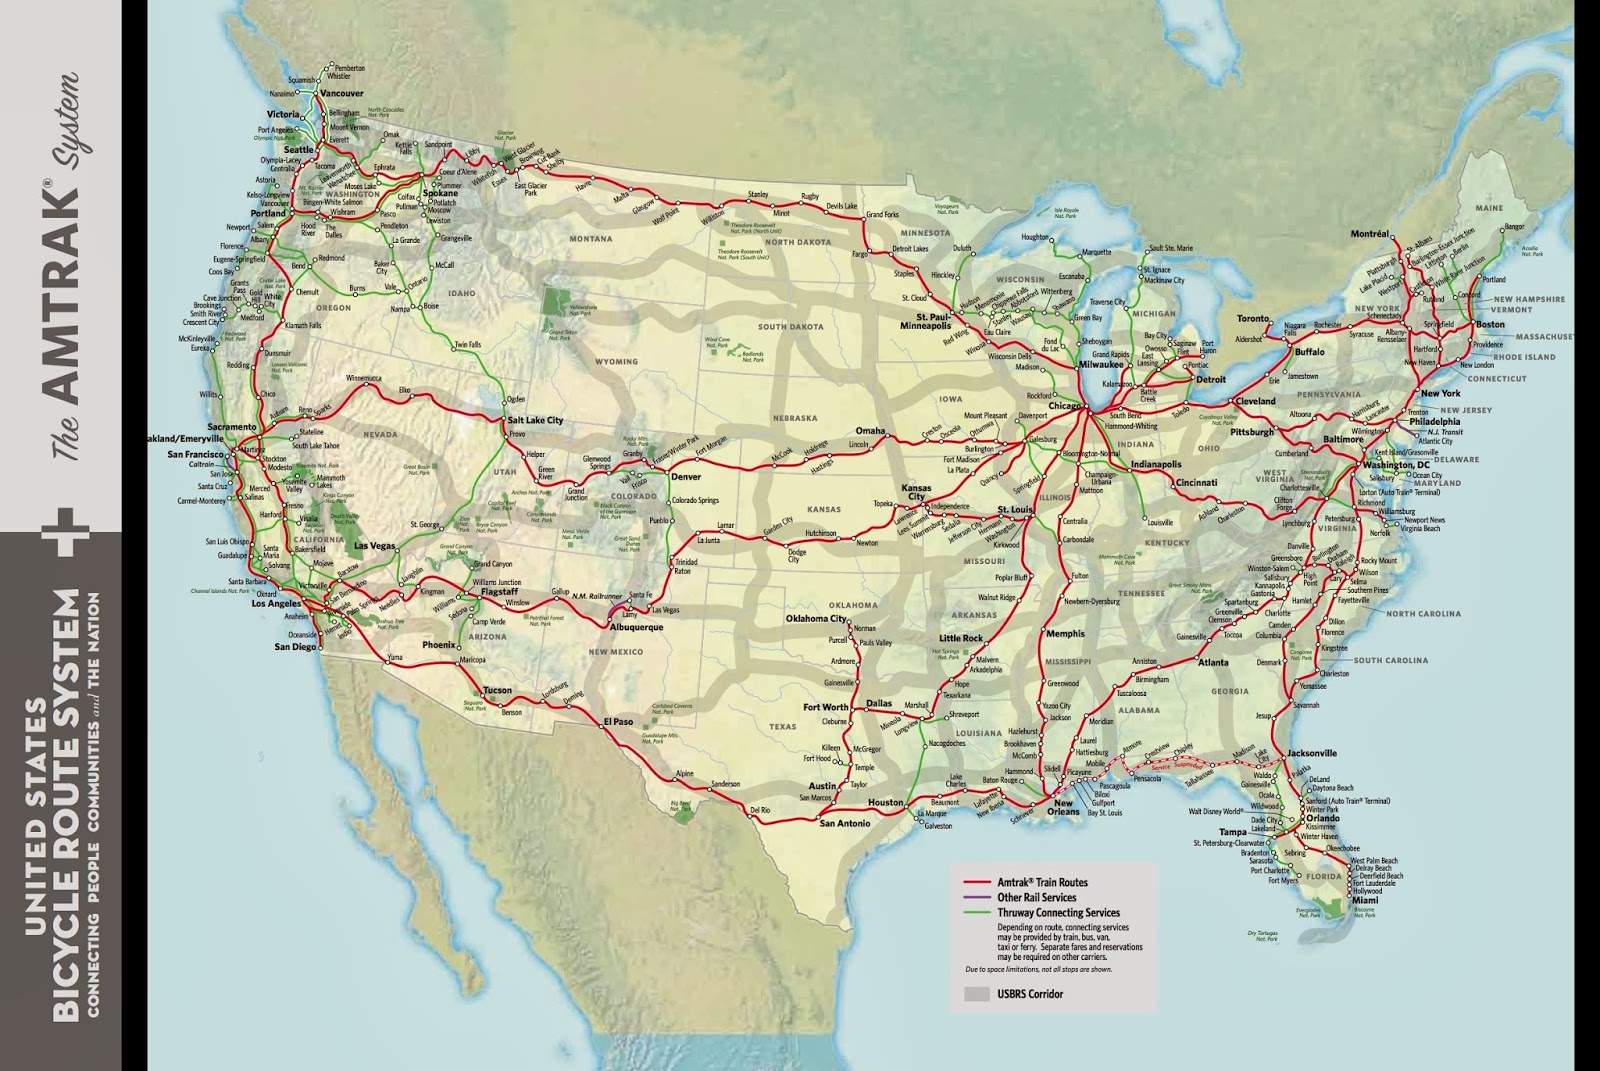 Have Bicycle Will Travel United States Bike Route SystemAmtrak – Train Travel In Usa Maps